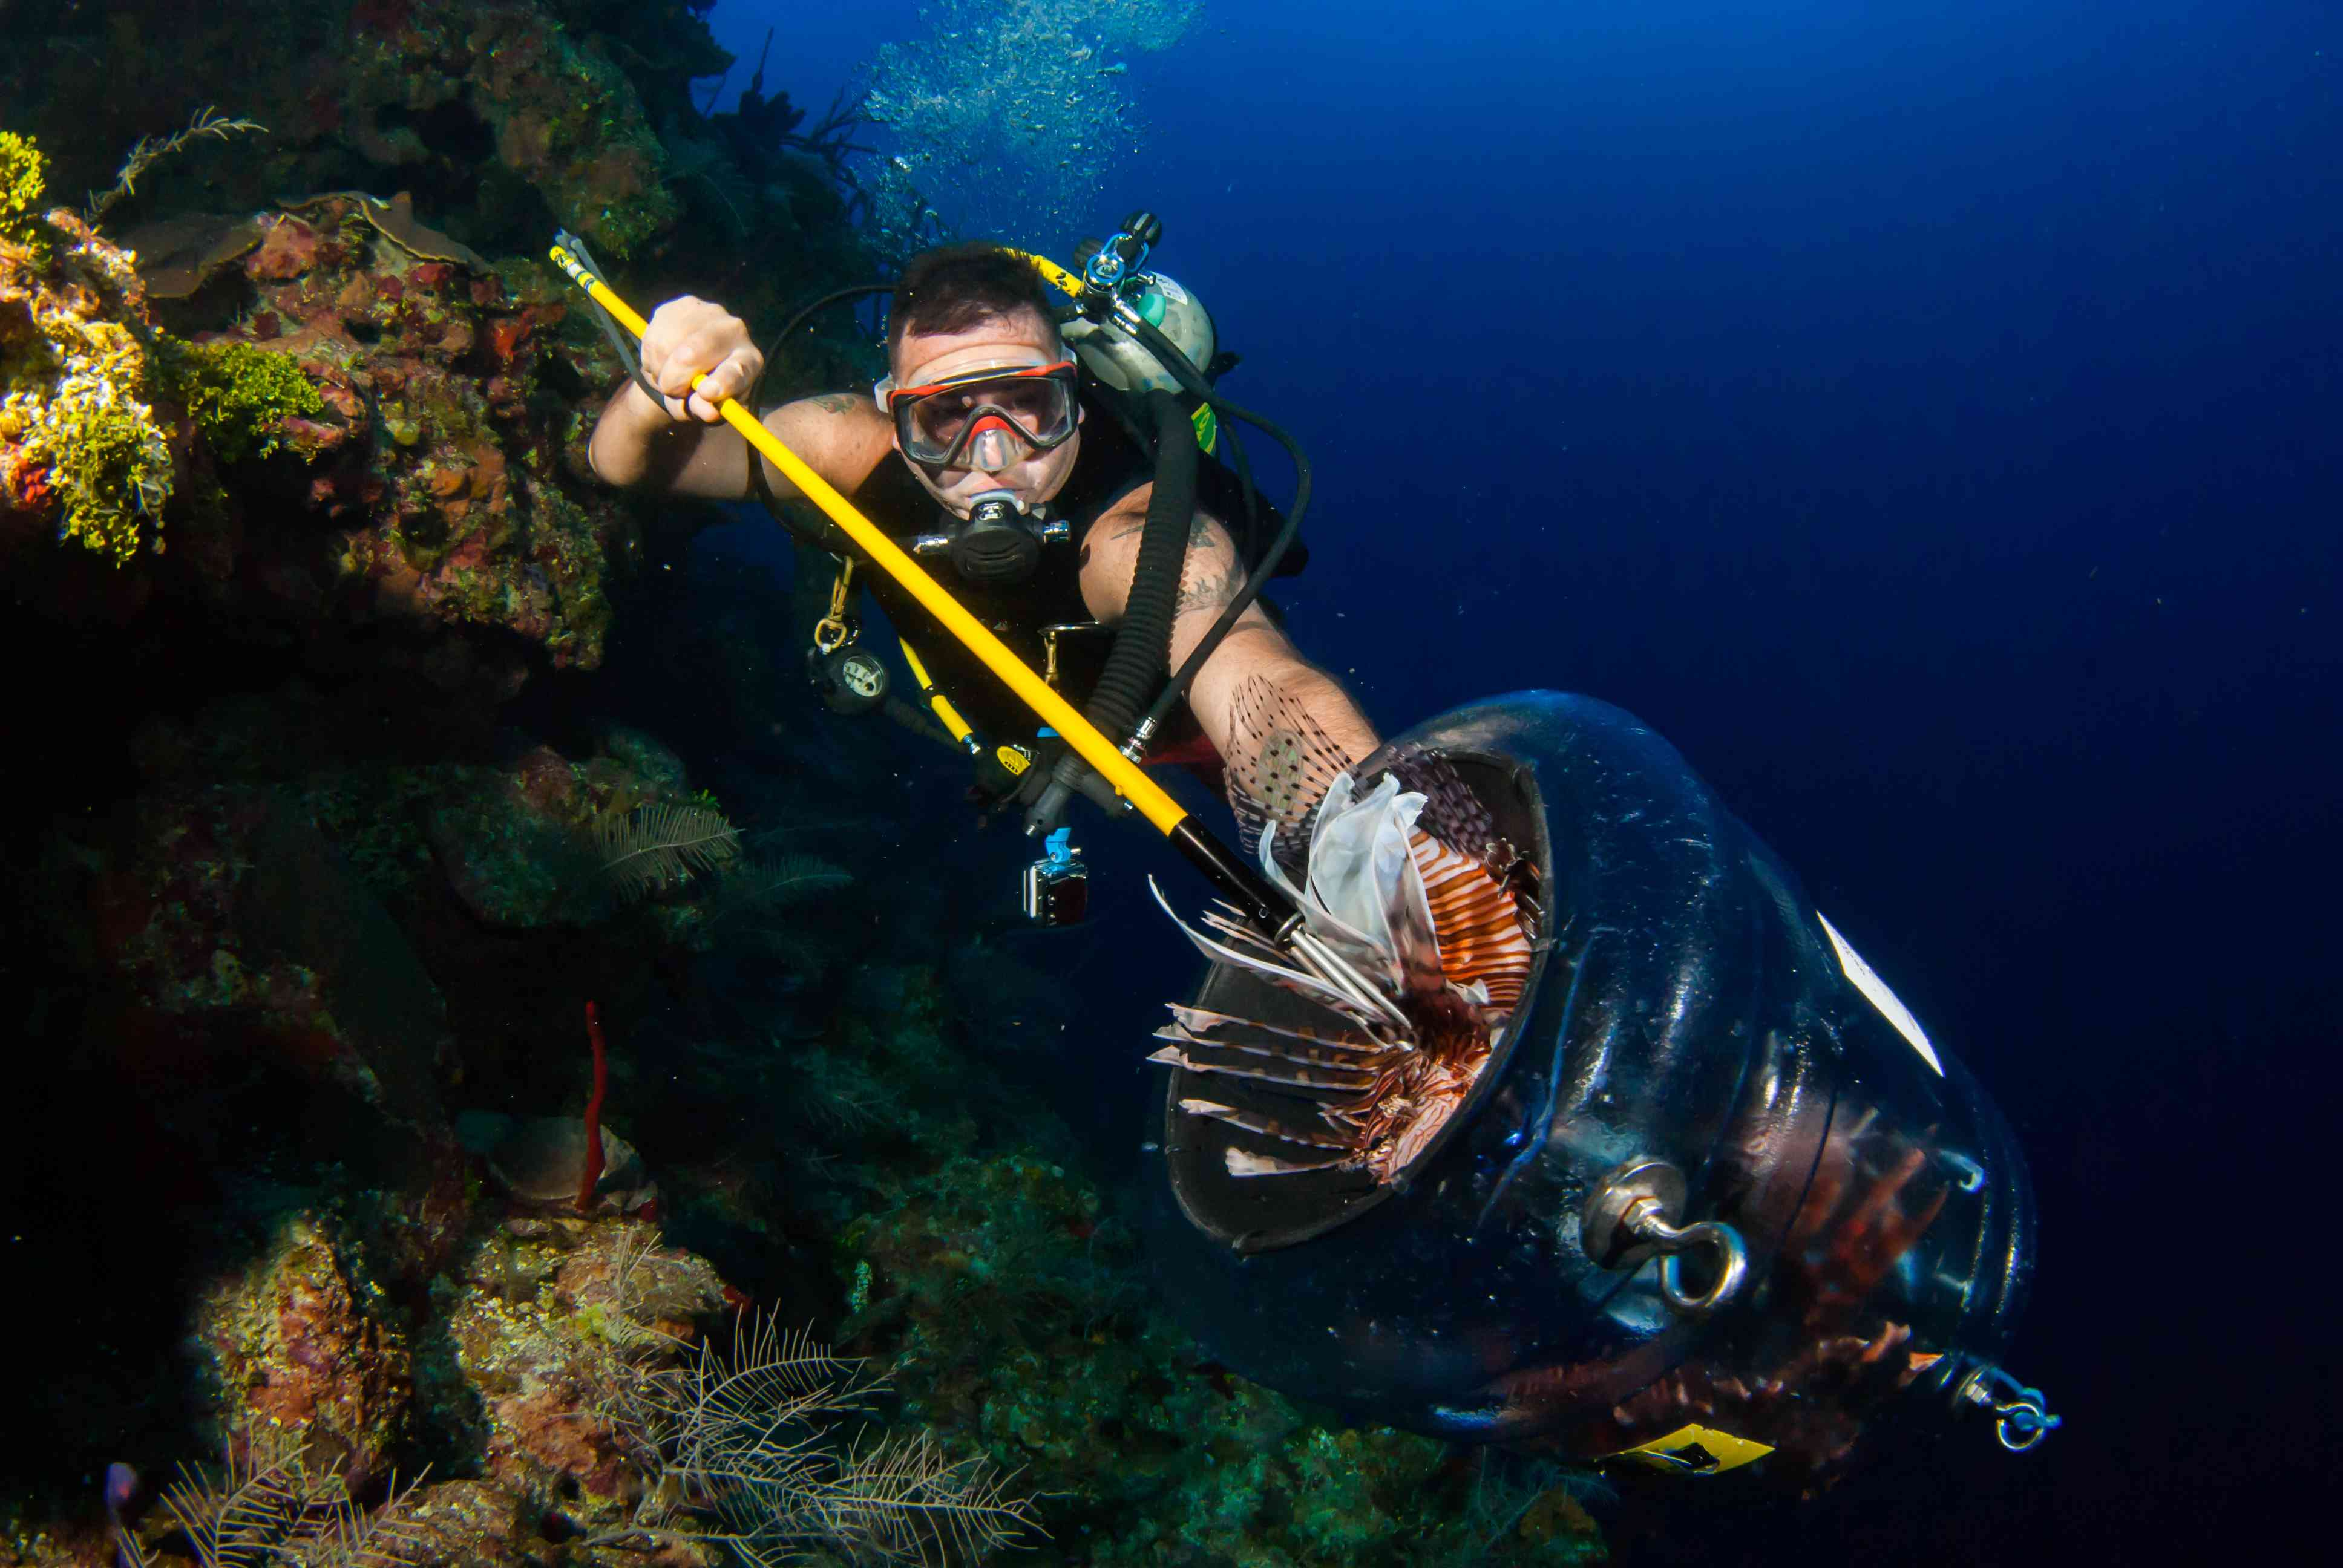 lionfish hunter has successfully caught a fish on his spear and is putting it in a containment device